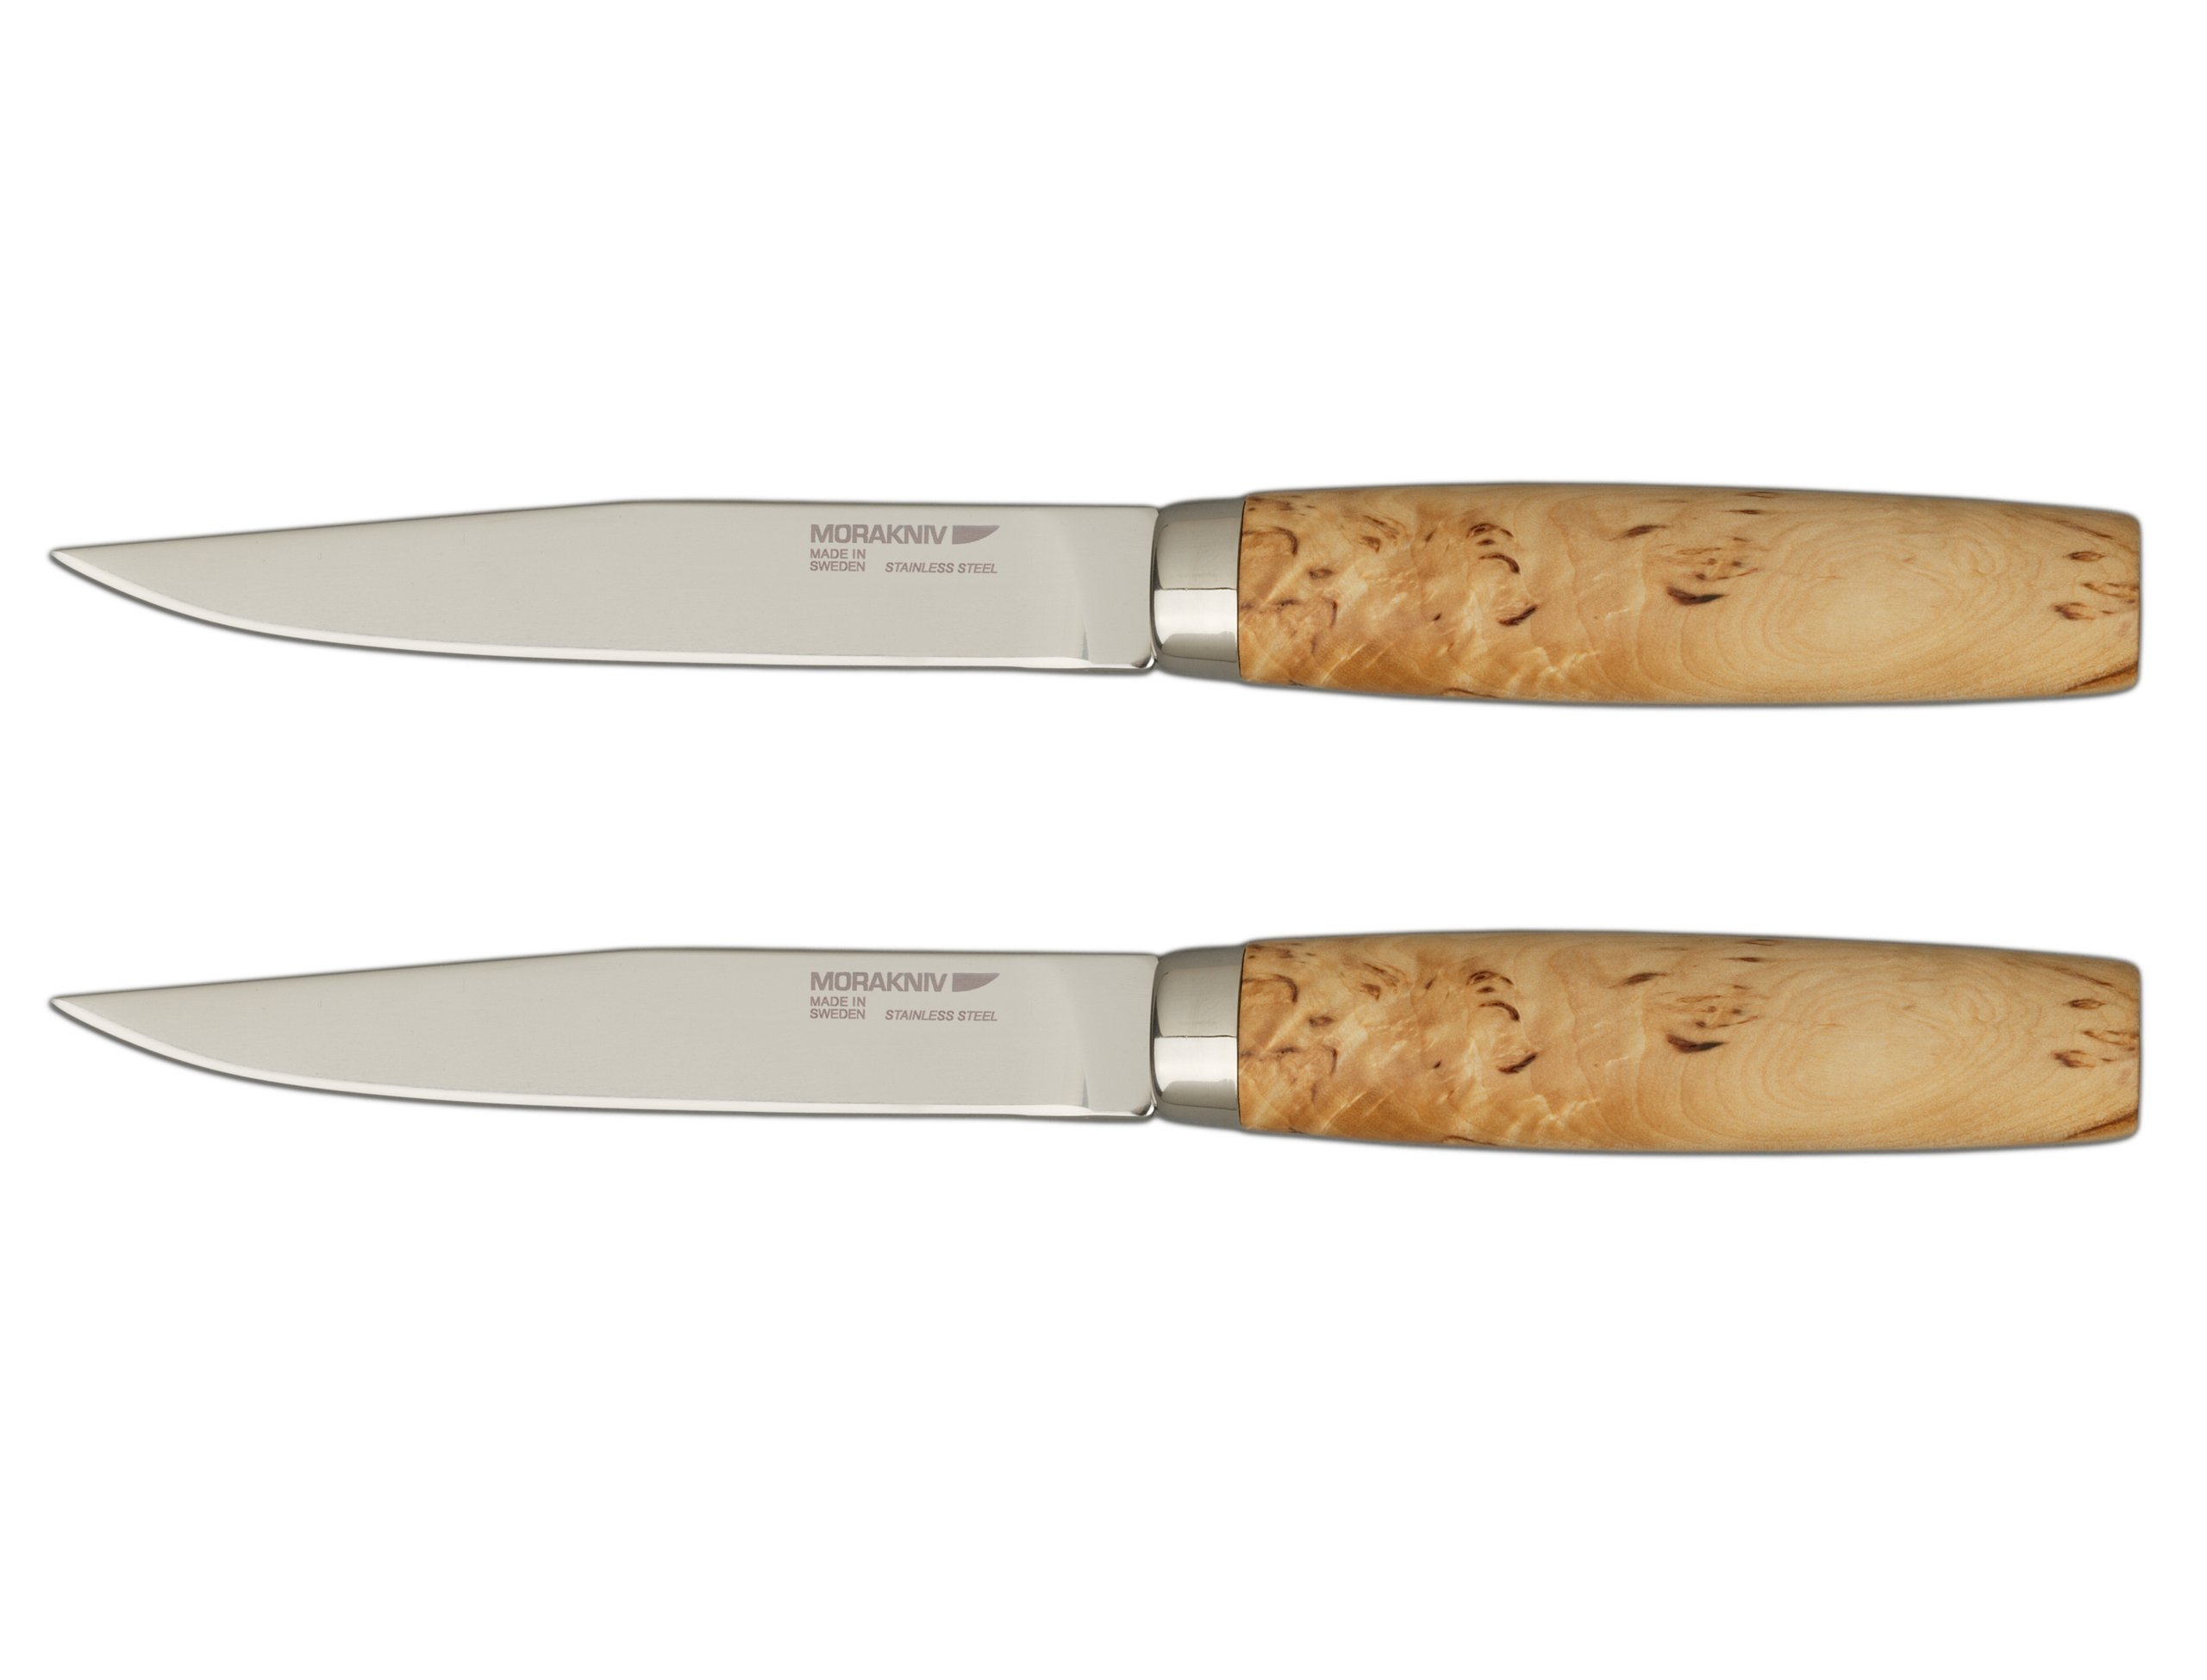 Frosts by Mora of Sweden Handmade Steak Knife with 4.8-Inch Stainless Steel Blade and Masur Birch Handle (Gift Set of 2)